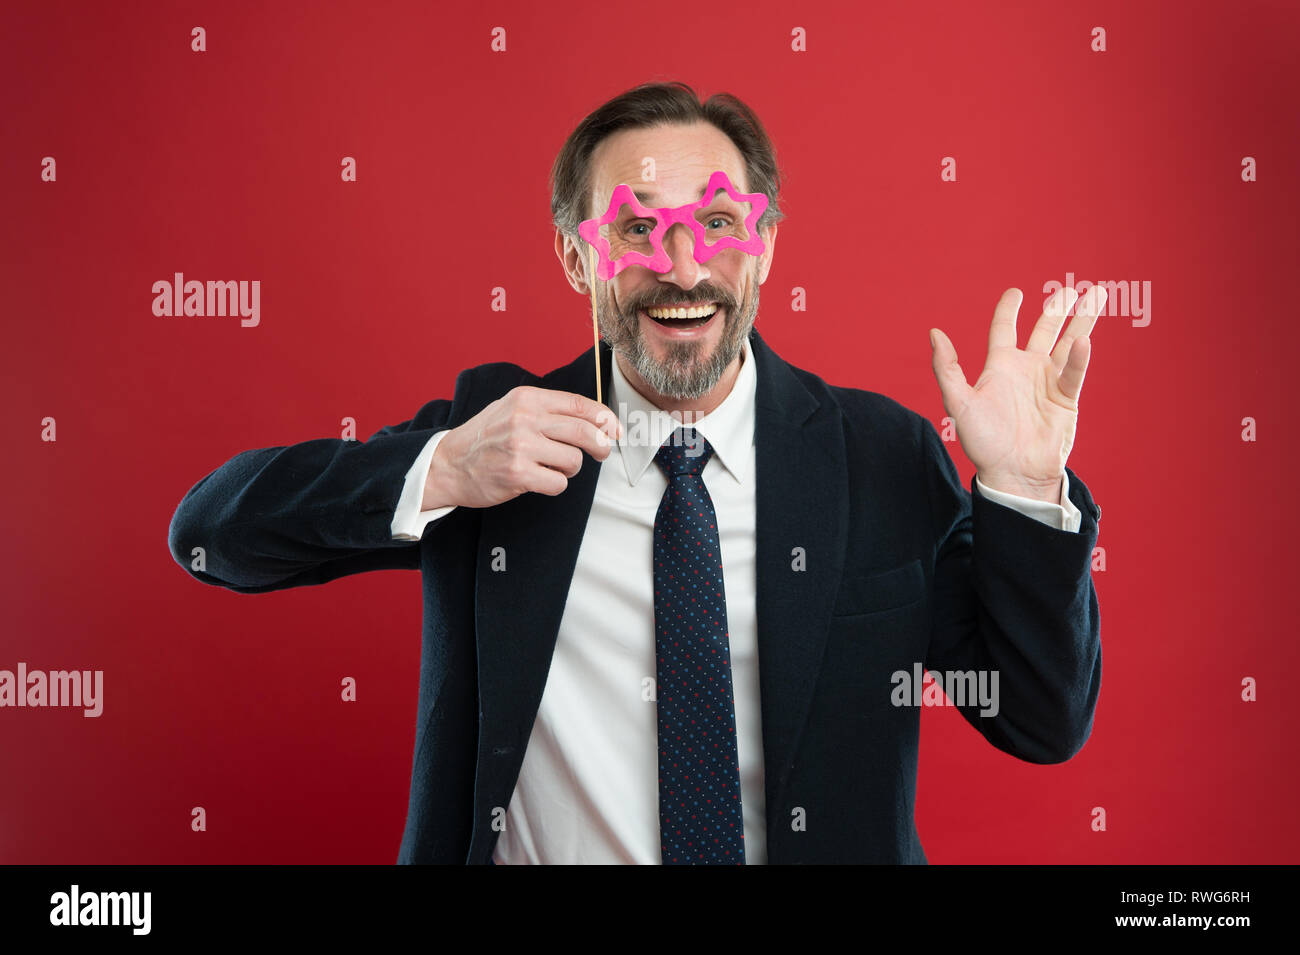 Cheerful businessman in party photo booth props. Guy enjoying party carnival. Holiday party celebration. Having fun. Office party corporate. Join carnival. Man formal suit wear fake glasses accessory. Stock Photo